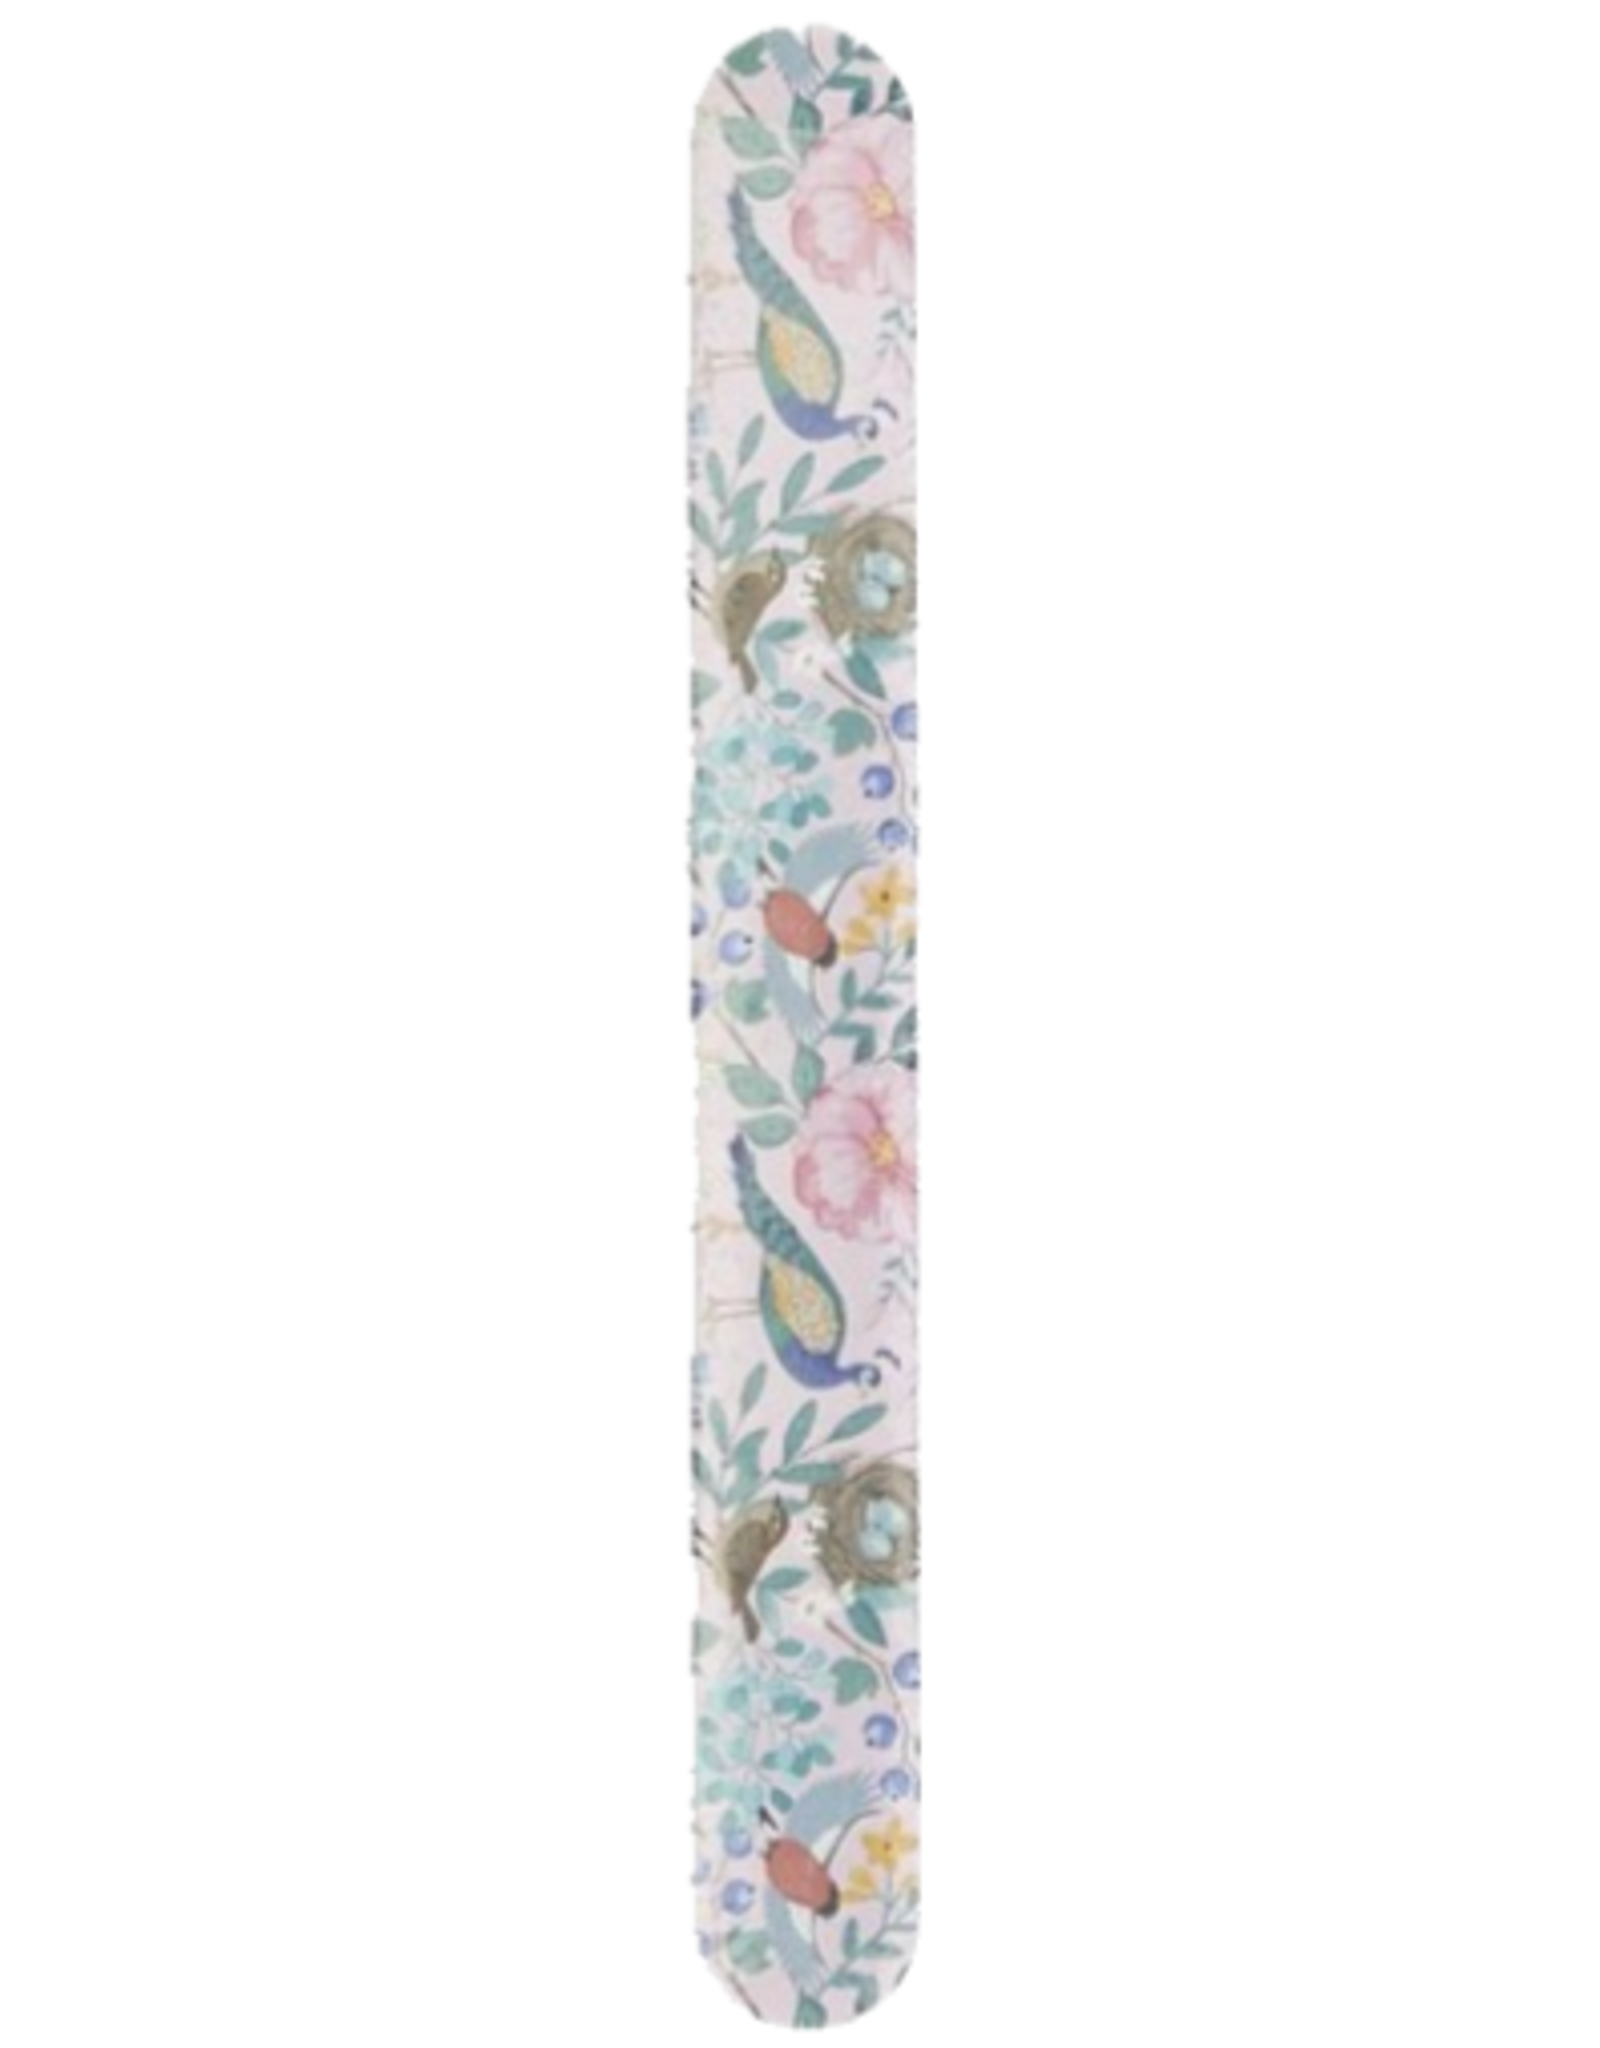 EMERY BOARD BIRDS OF A FEATHER PINK